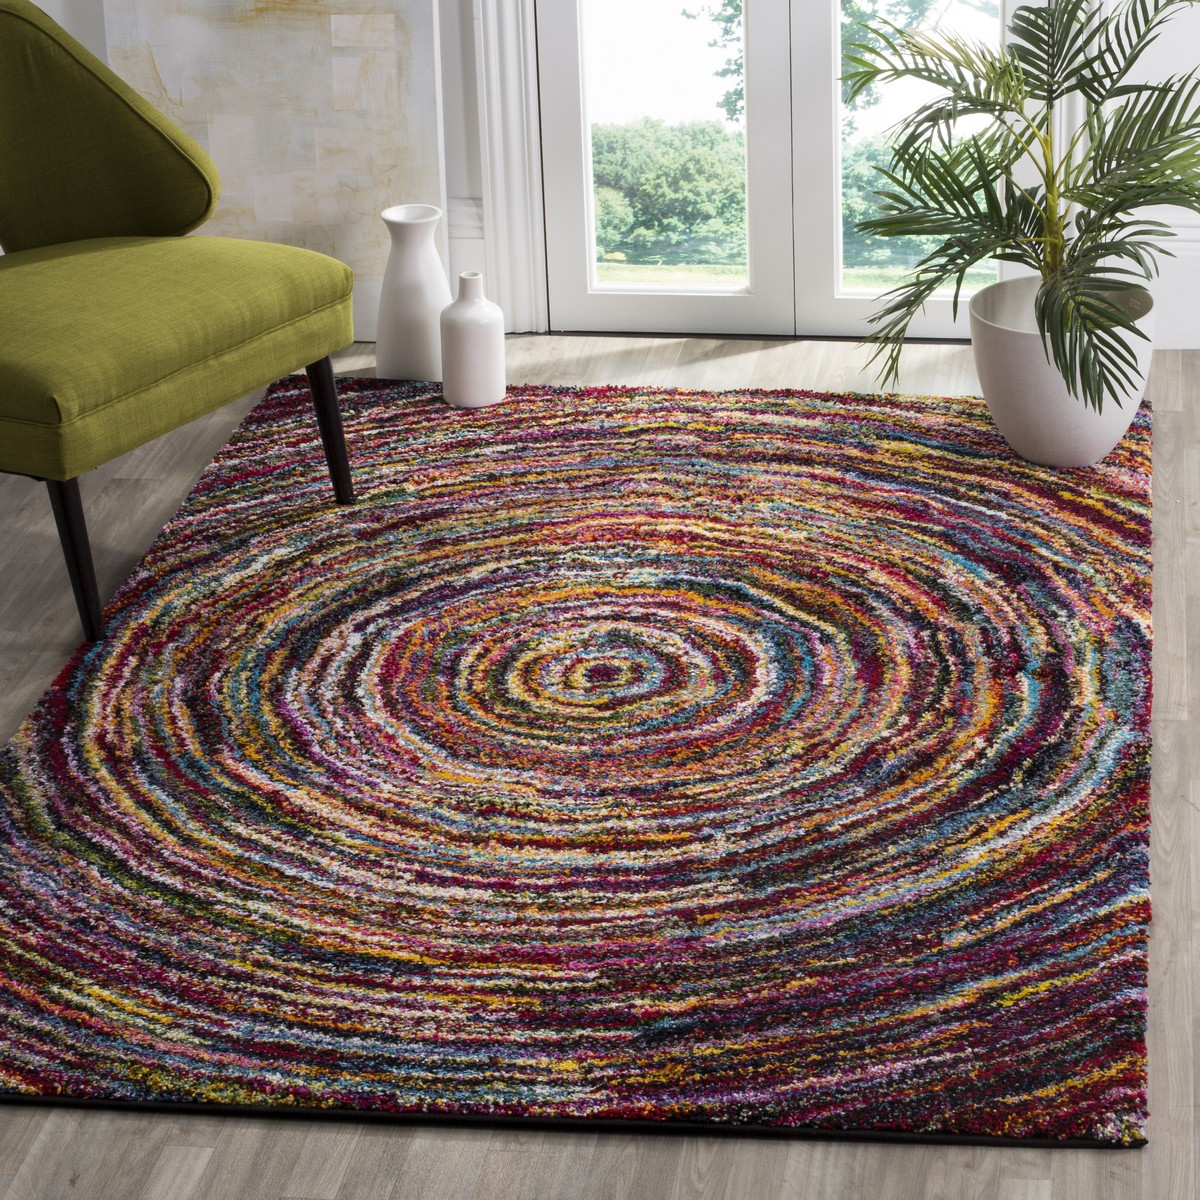 Colorful shag rug fiesta shag collection safavieh - Colorful rugs for living room ...